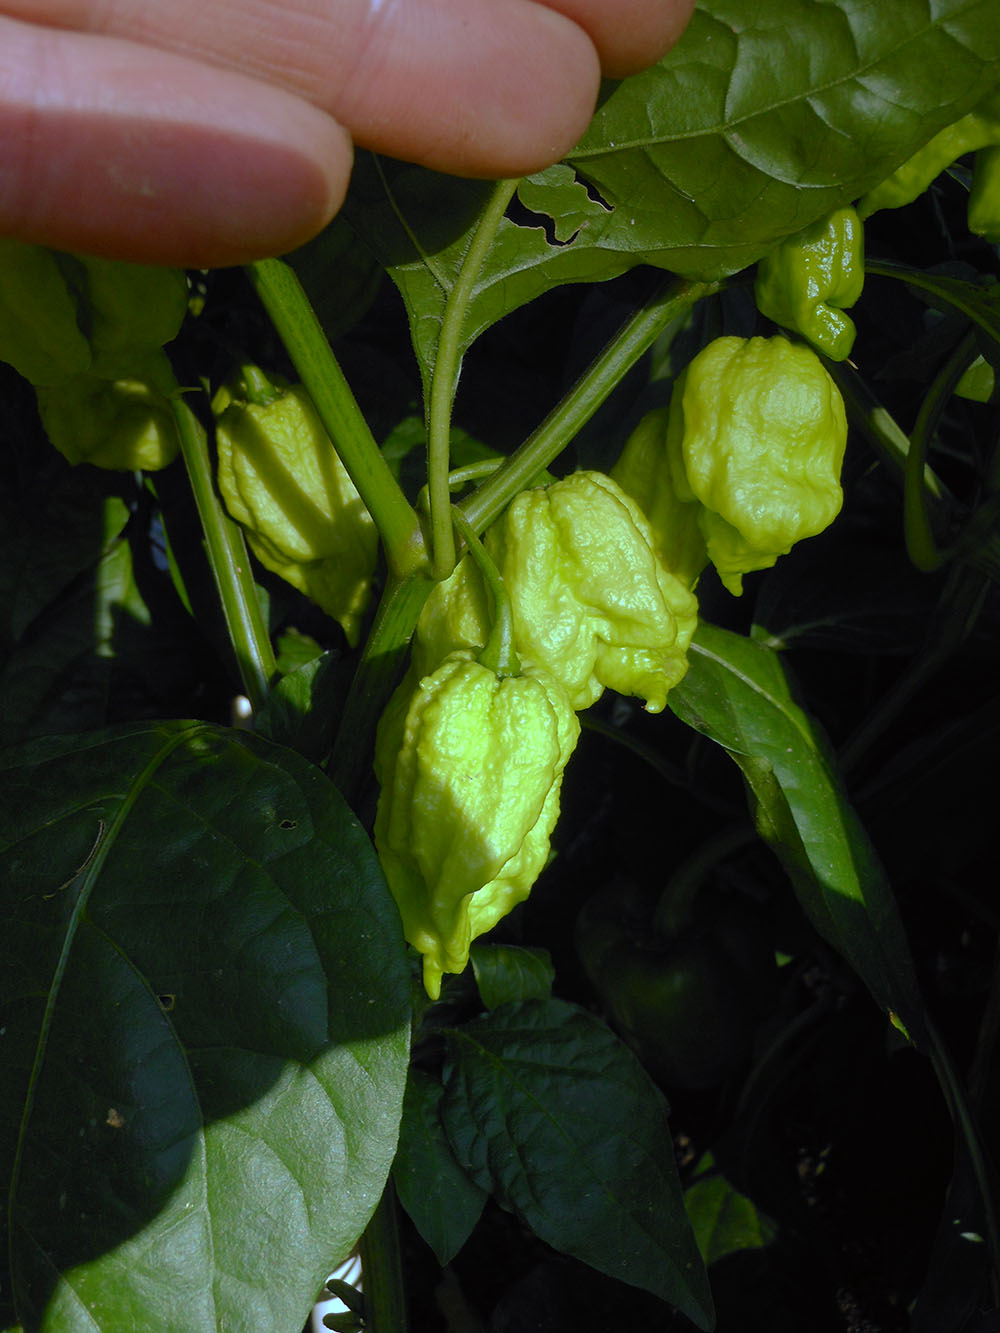 06-25-2015 Garden 01 Trinidad Scorpion HOT Peppers 01